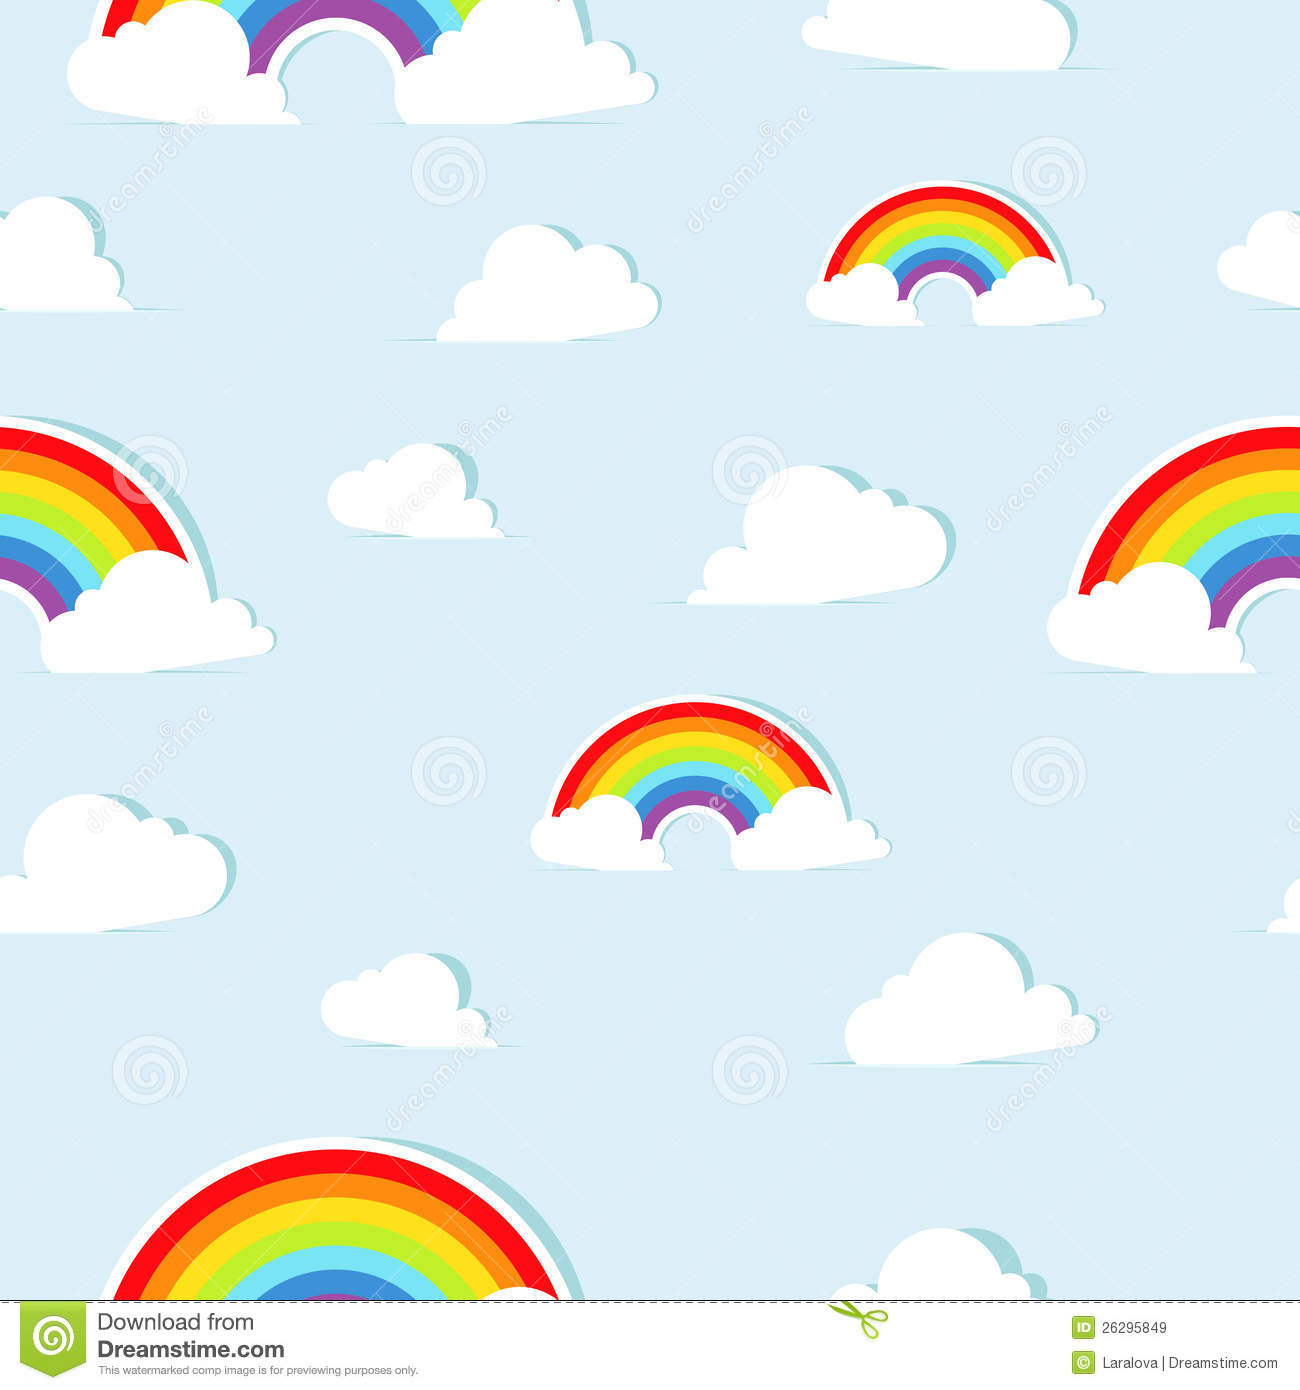 Seamless Background Pattern With Paper Rainbows Royalty Free Stock ...